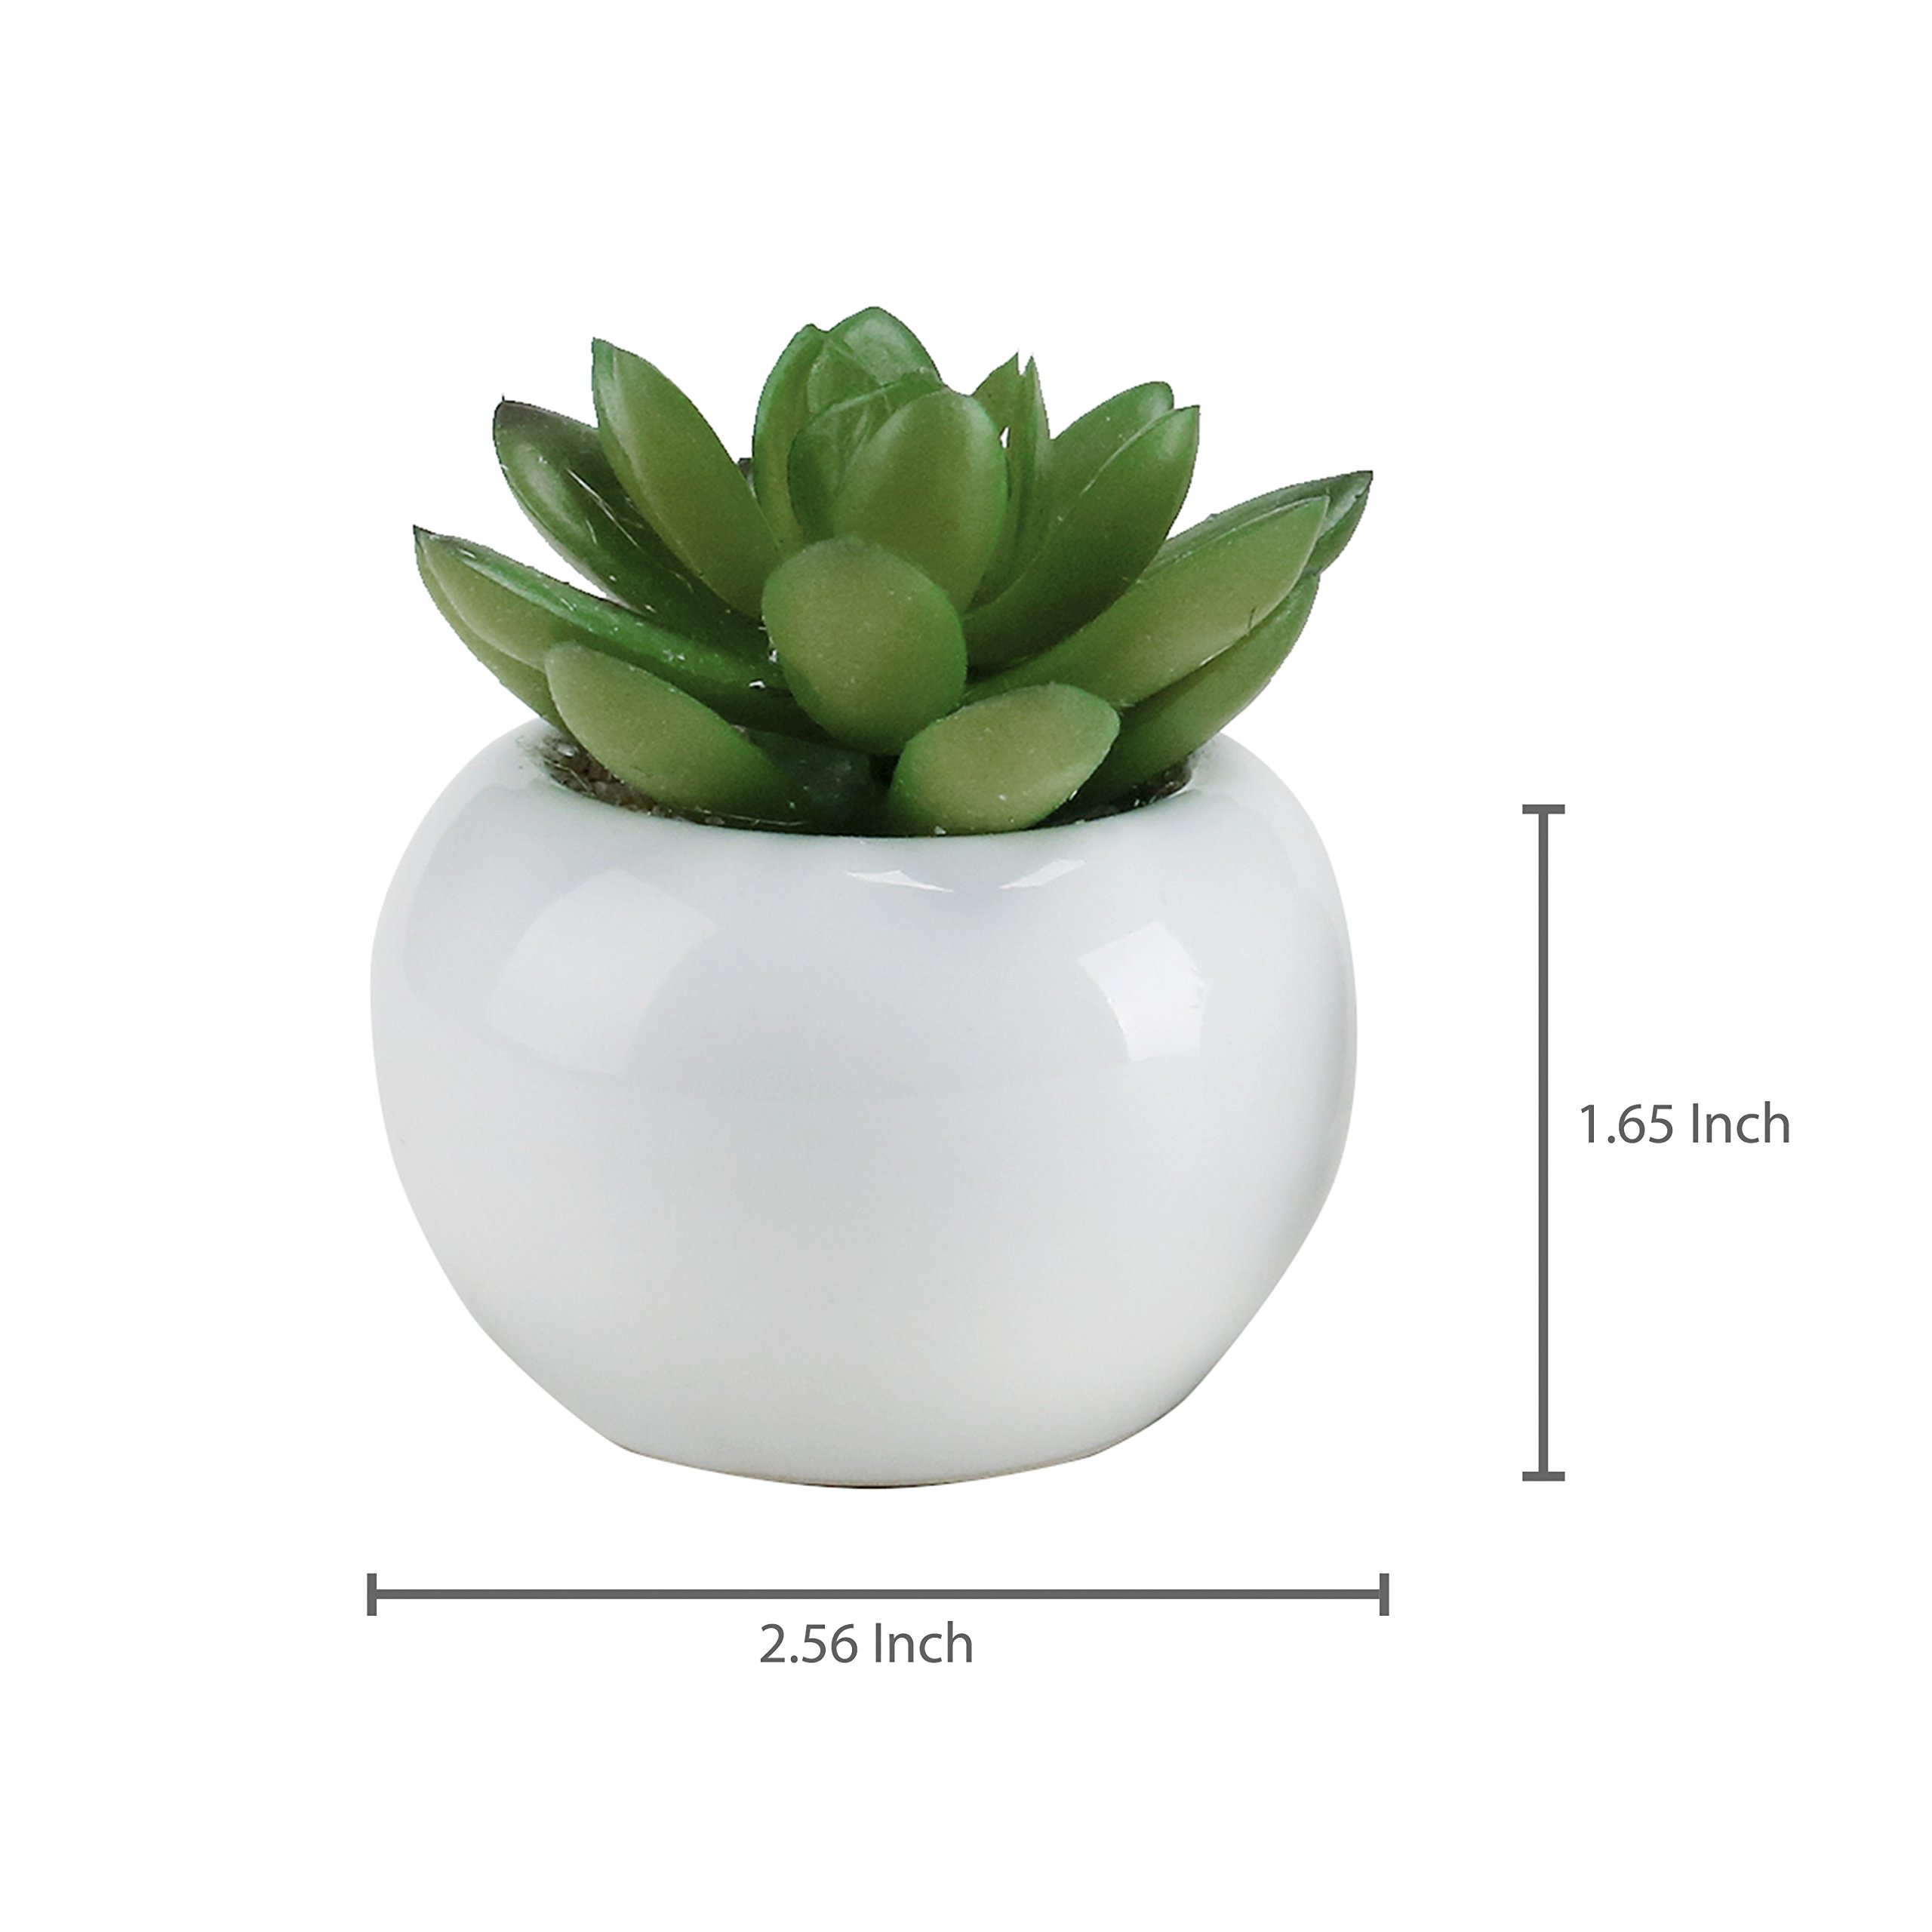 3-inch Mixed Green Artificial Succulent Plants in Round Glazed White Ceramic Pots, Set of 4 by MyGift (Image #6)